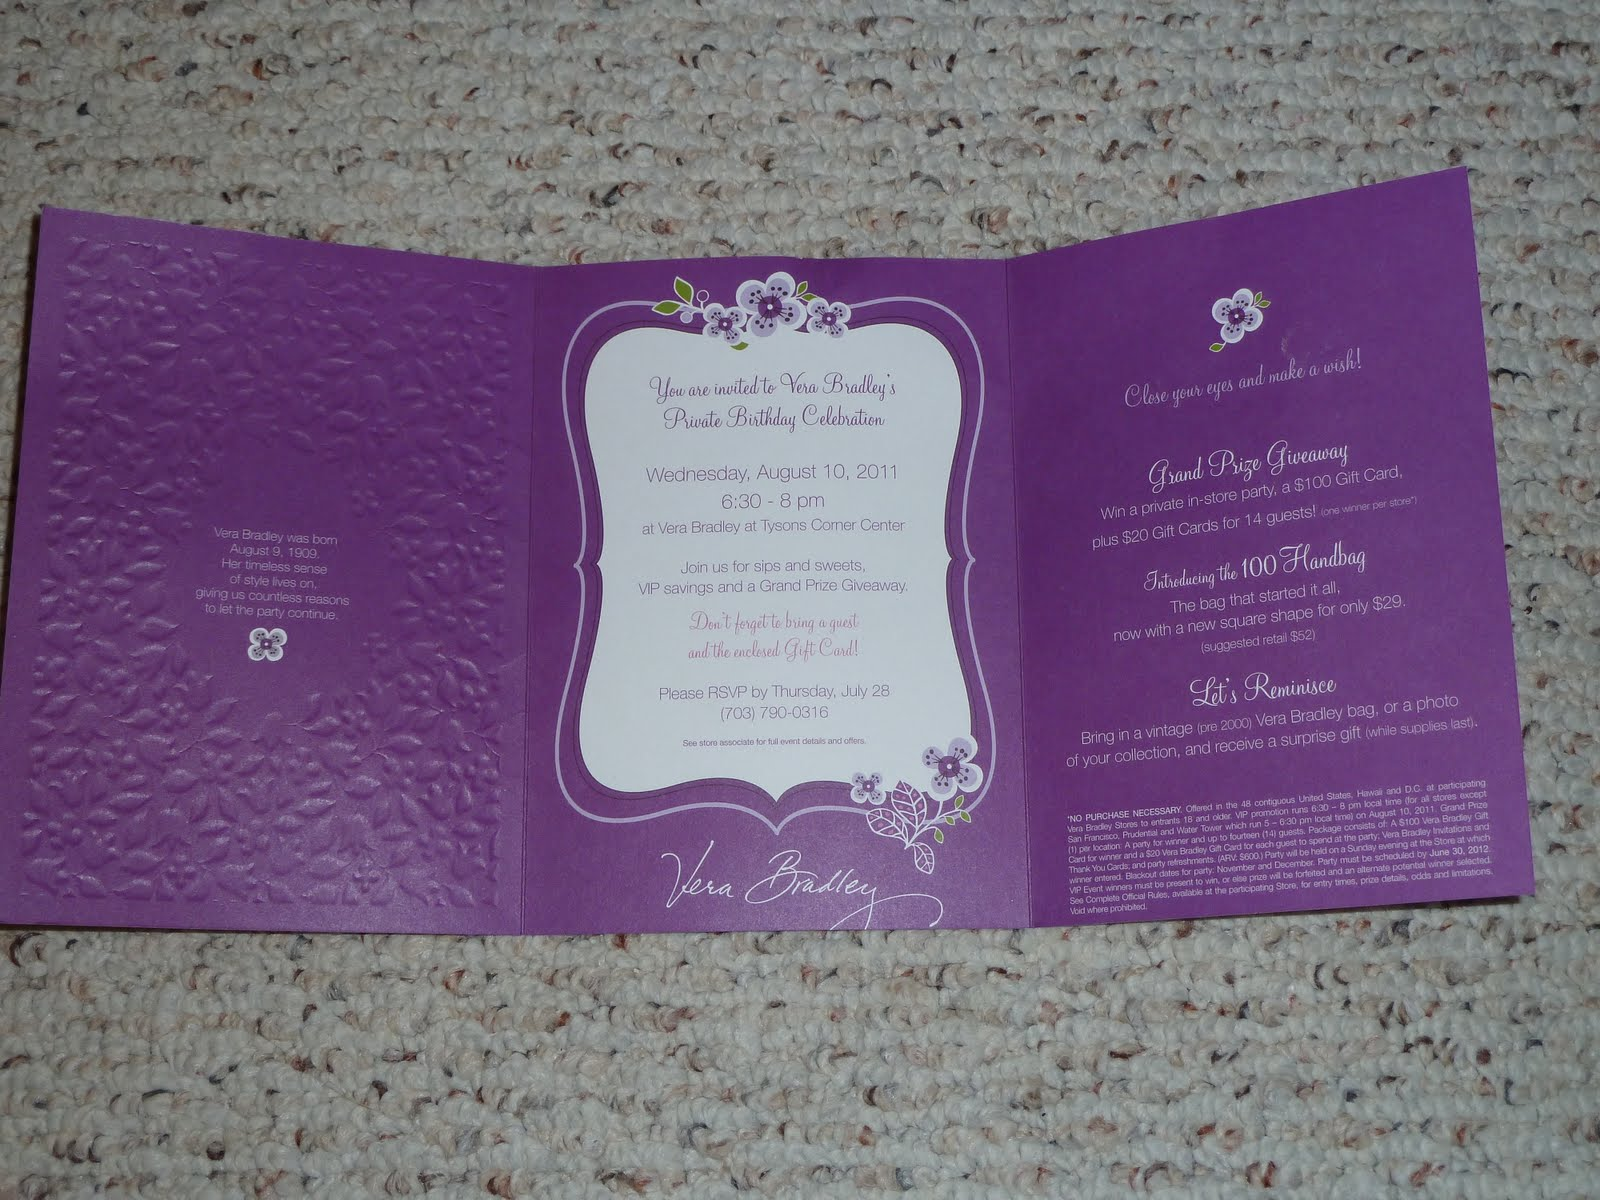 Now to some pictures of the beautiful invitation!